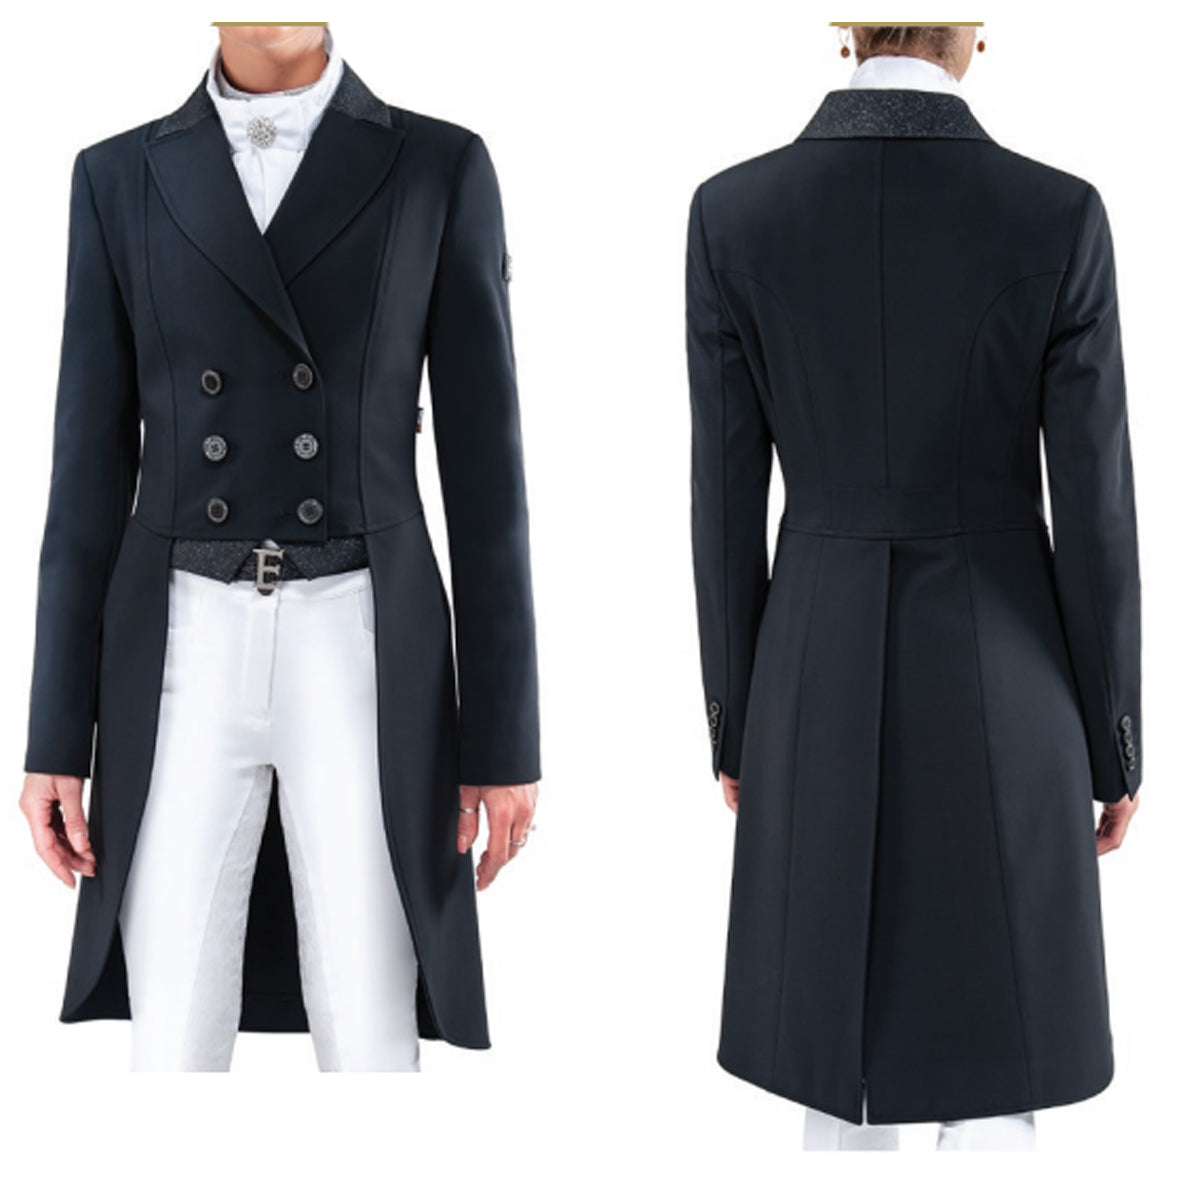 Equiline Galilee Tailcoat